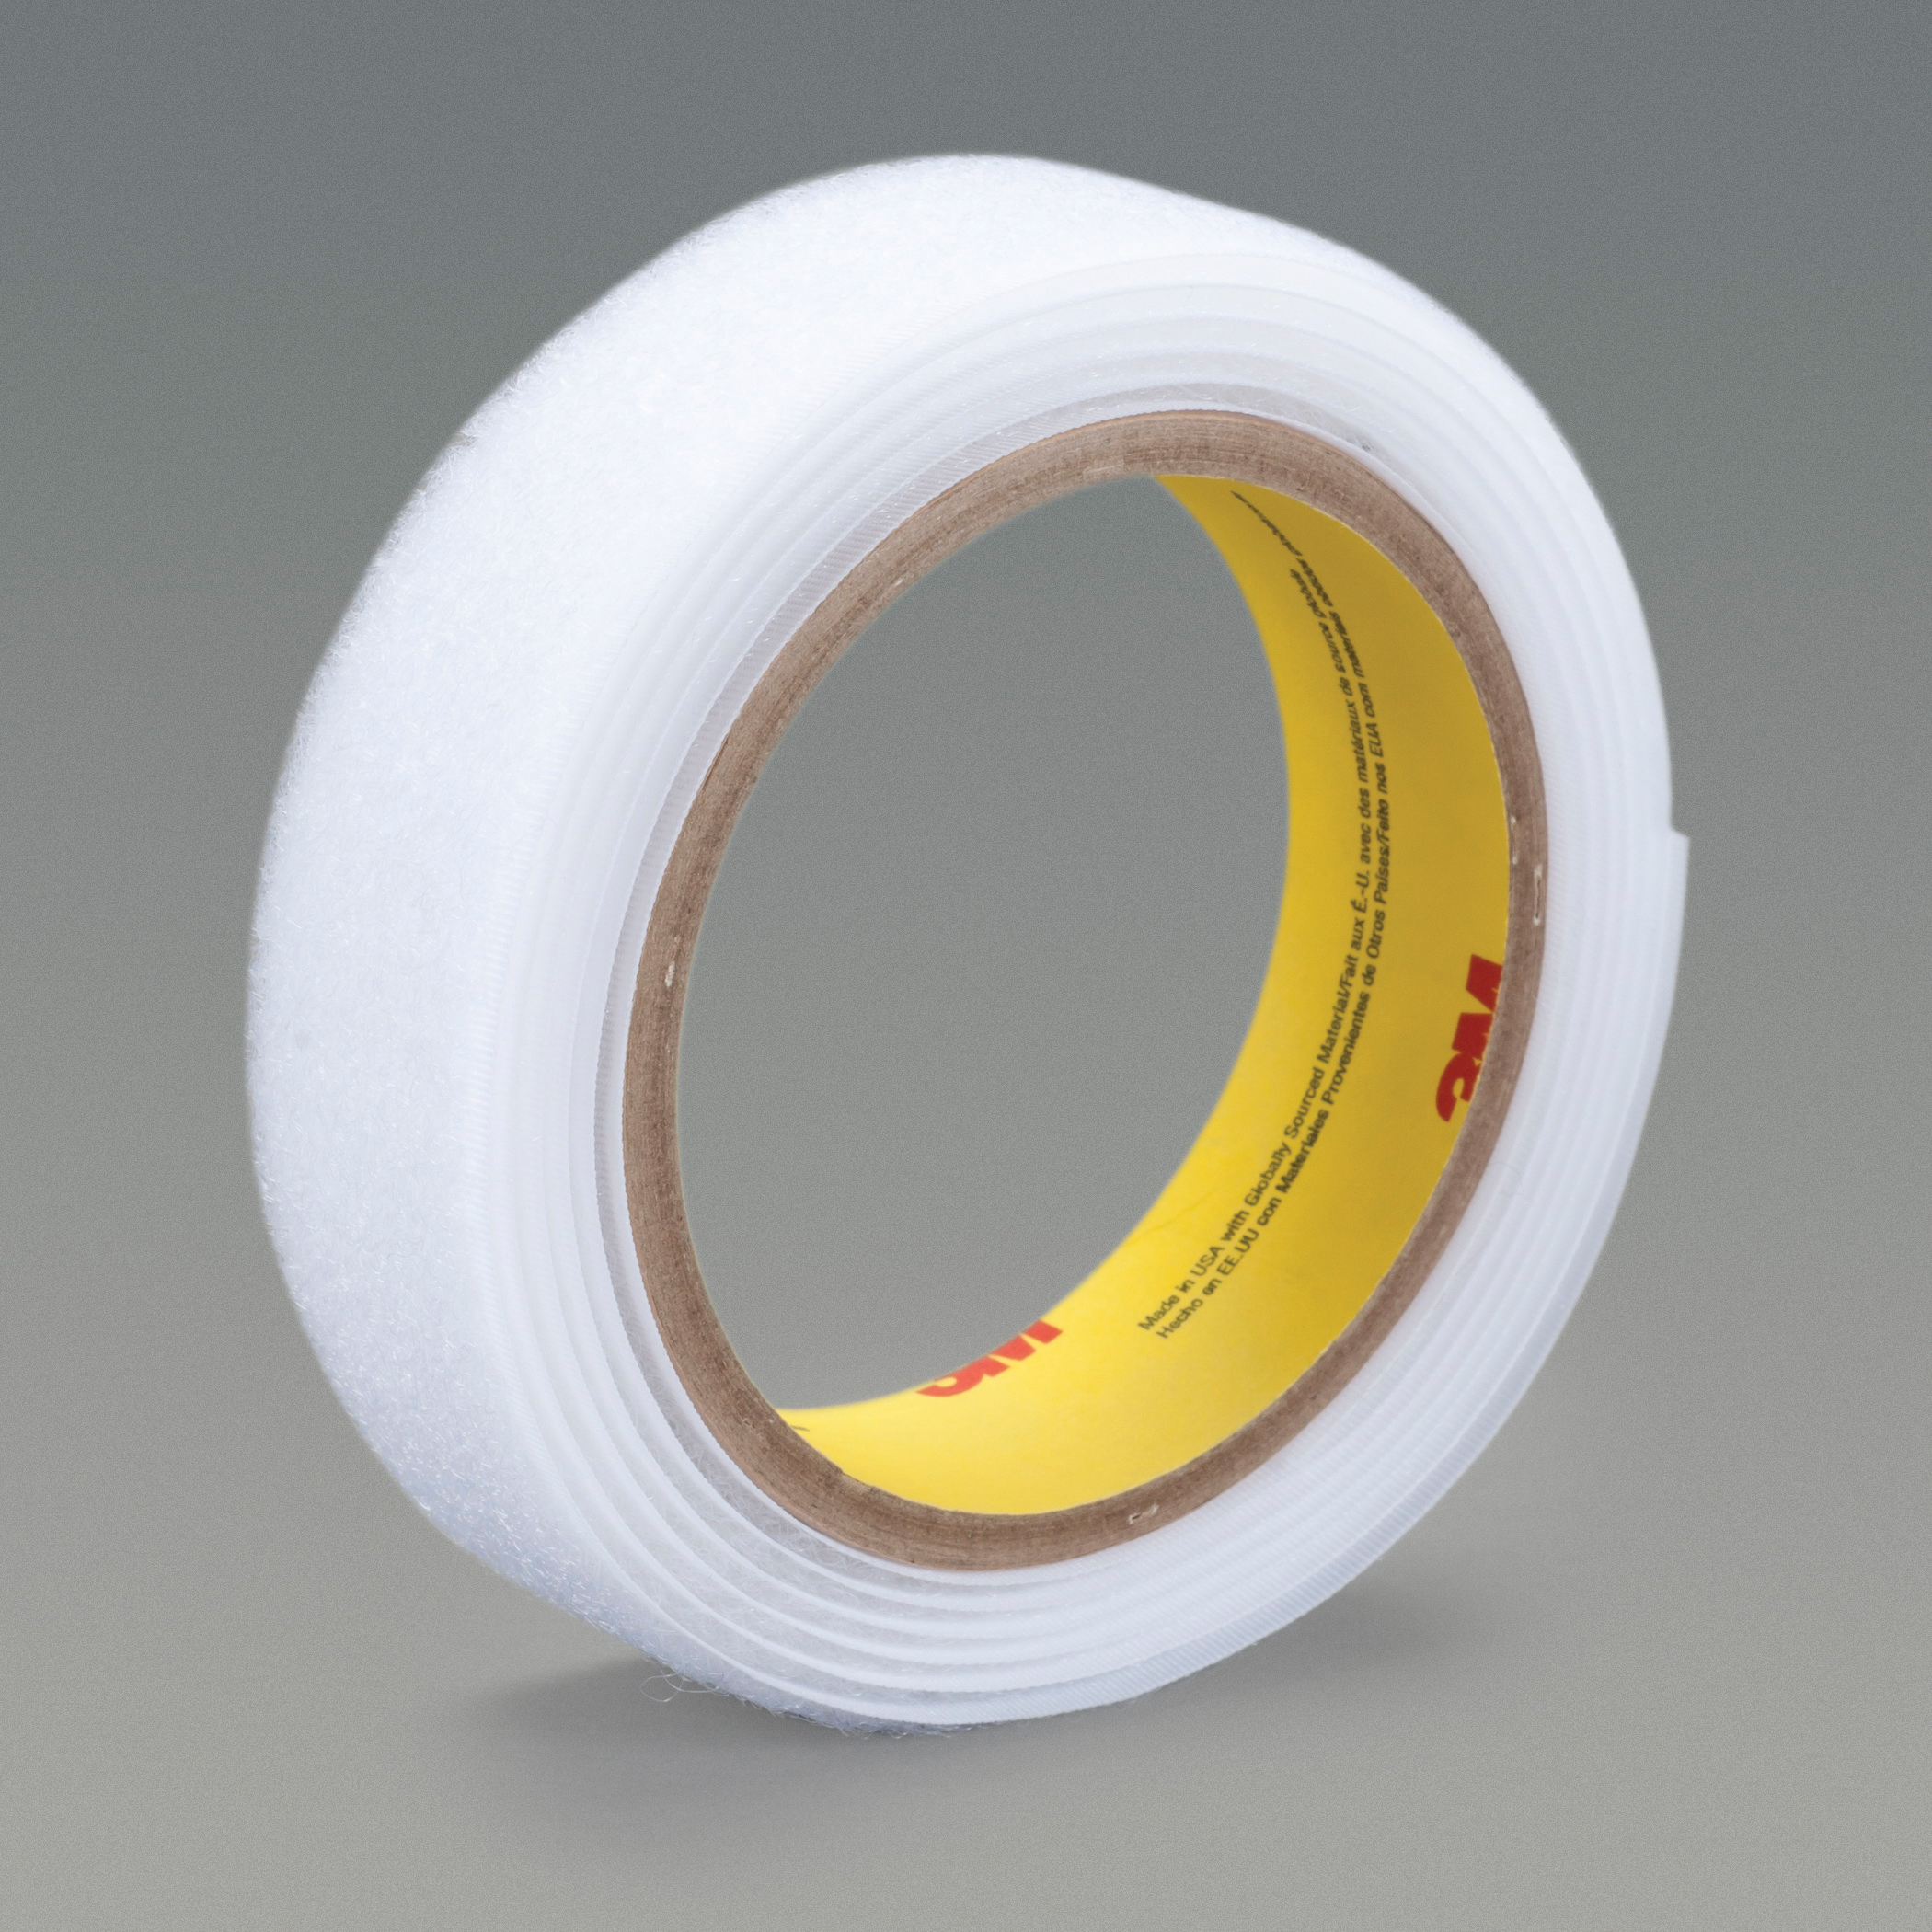 3M™ 021200-86269 Reclosable Loop Fastener Tape, 50 yd L x 2 in W, 0.15 in THK Engaged, Synthetic Rubber Adhesive, Woven Nylon Backing, White